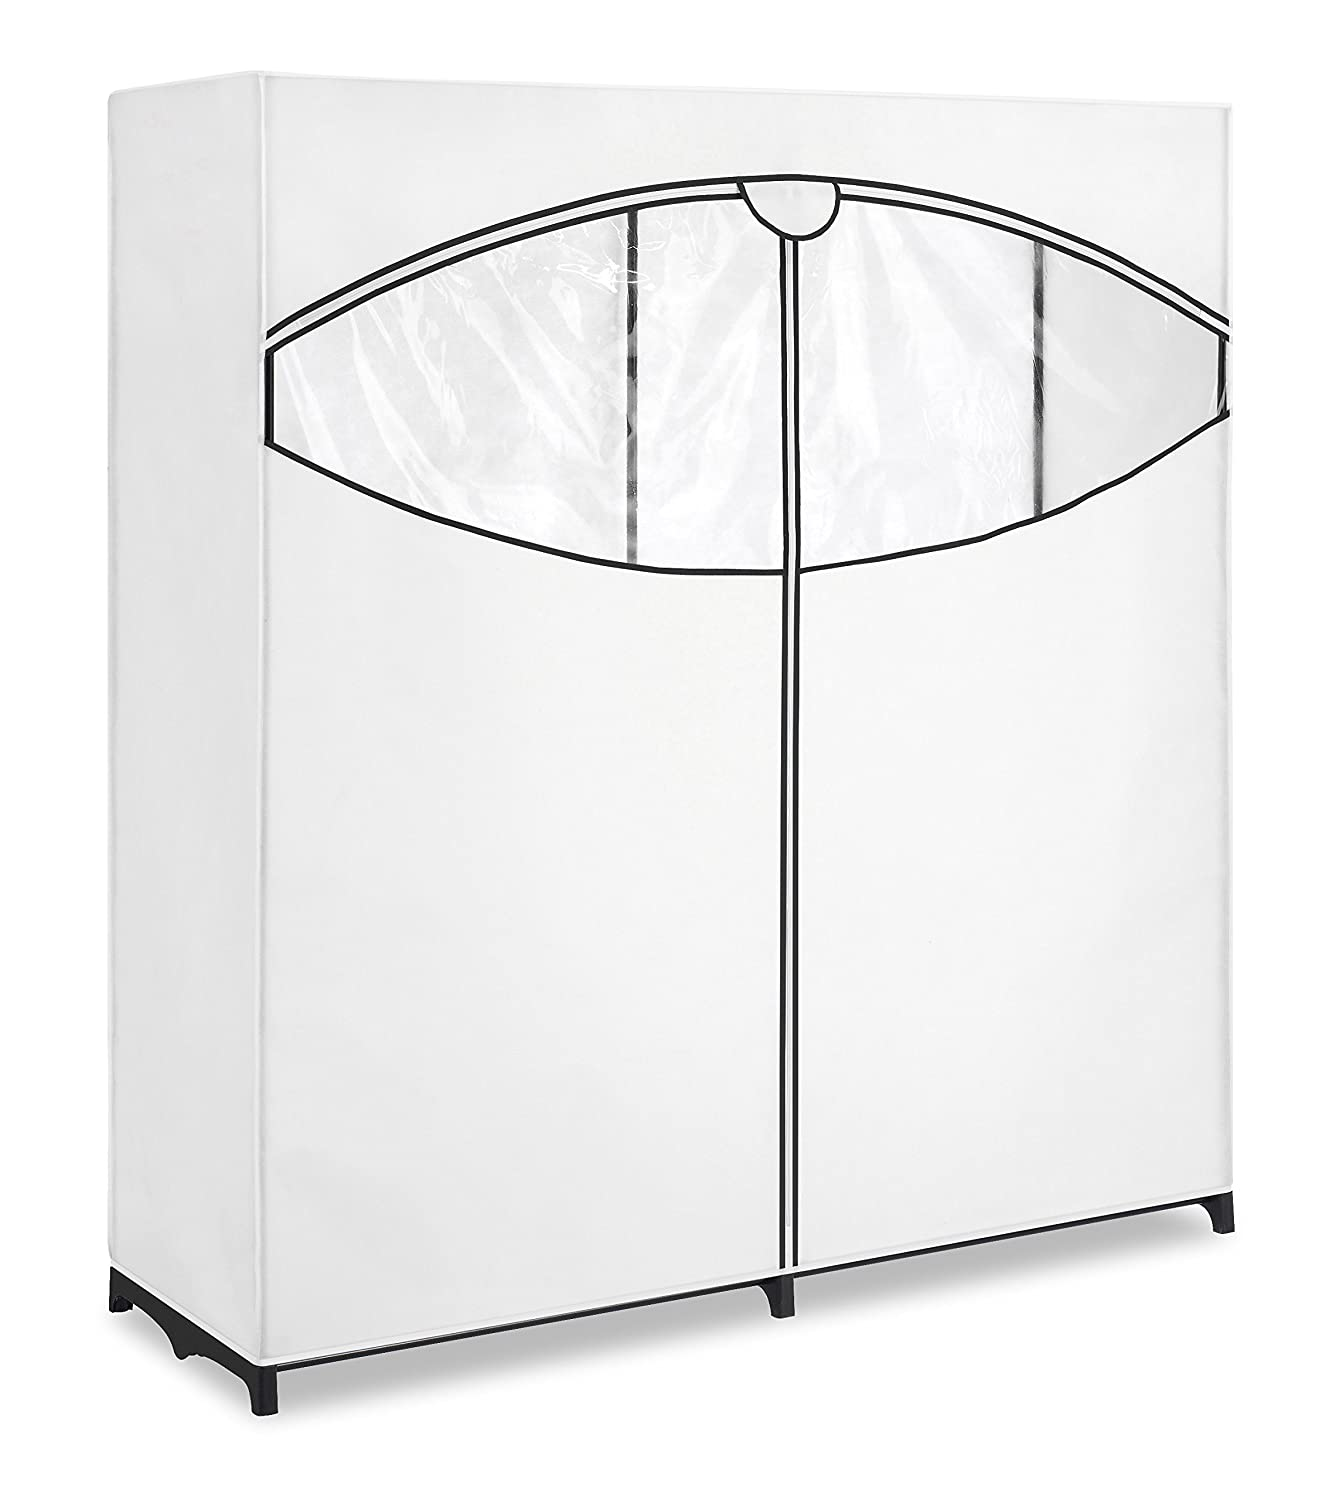 Whitmor Extra Wide Portable Clothes Closet, White 6822-167-B